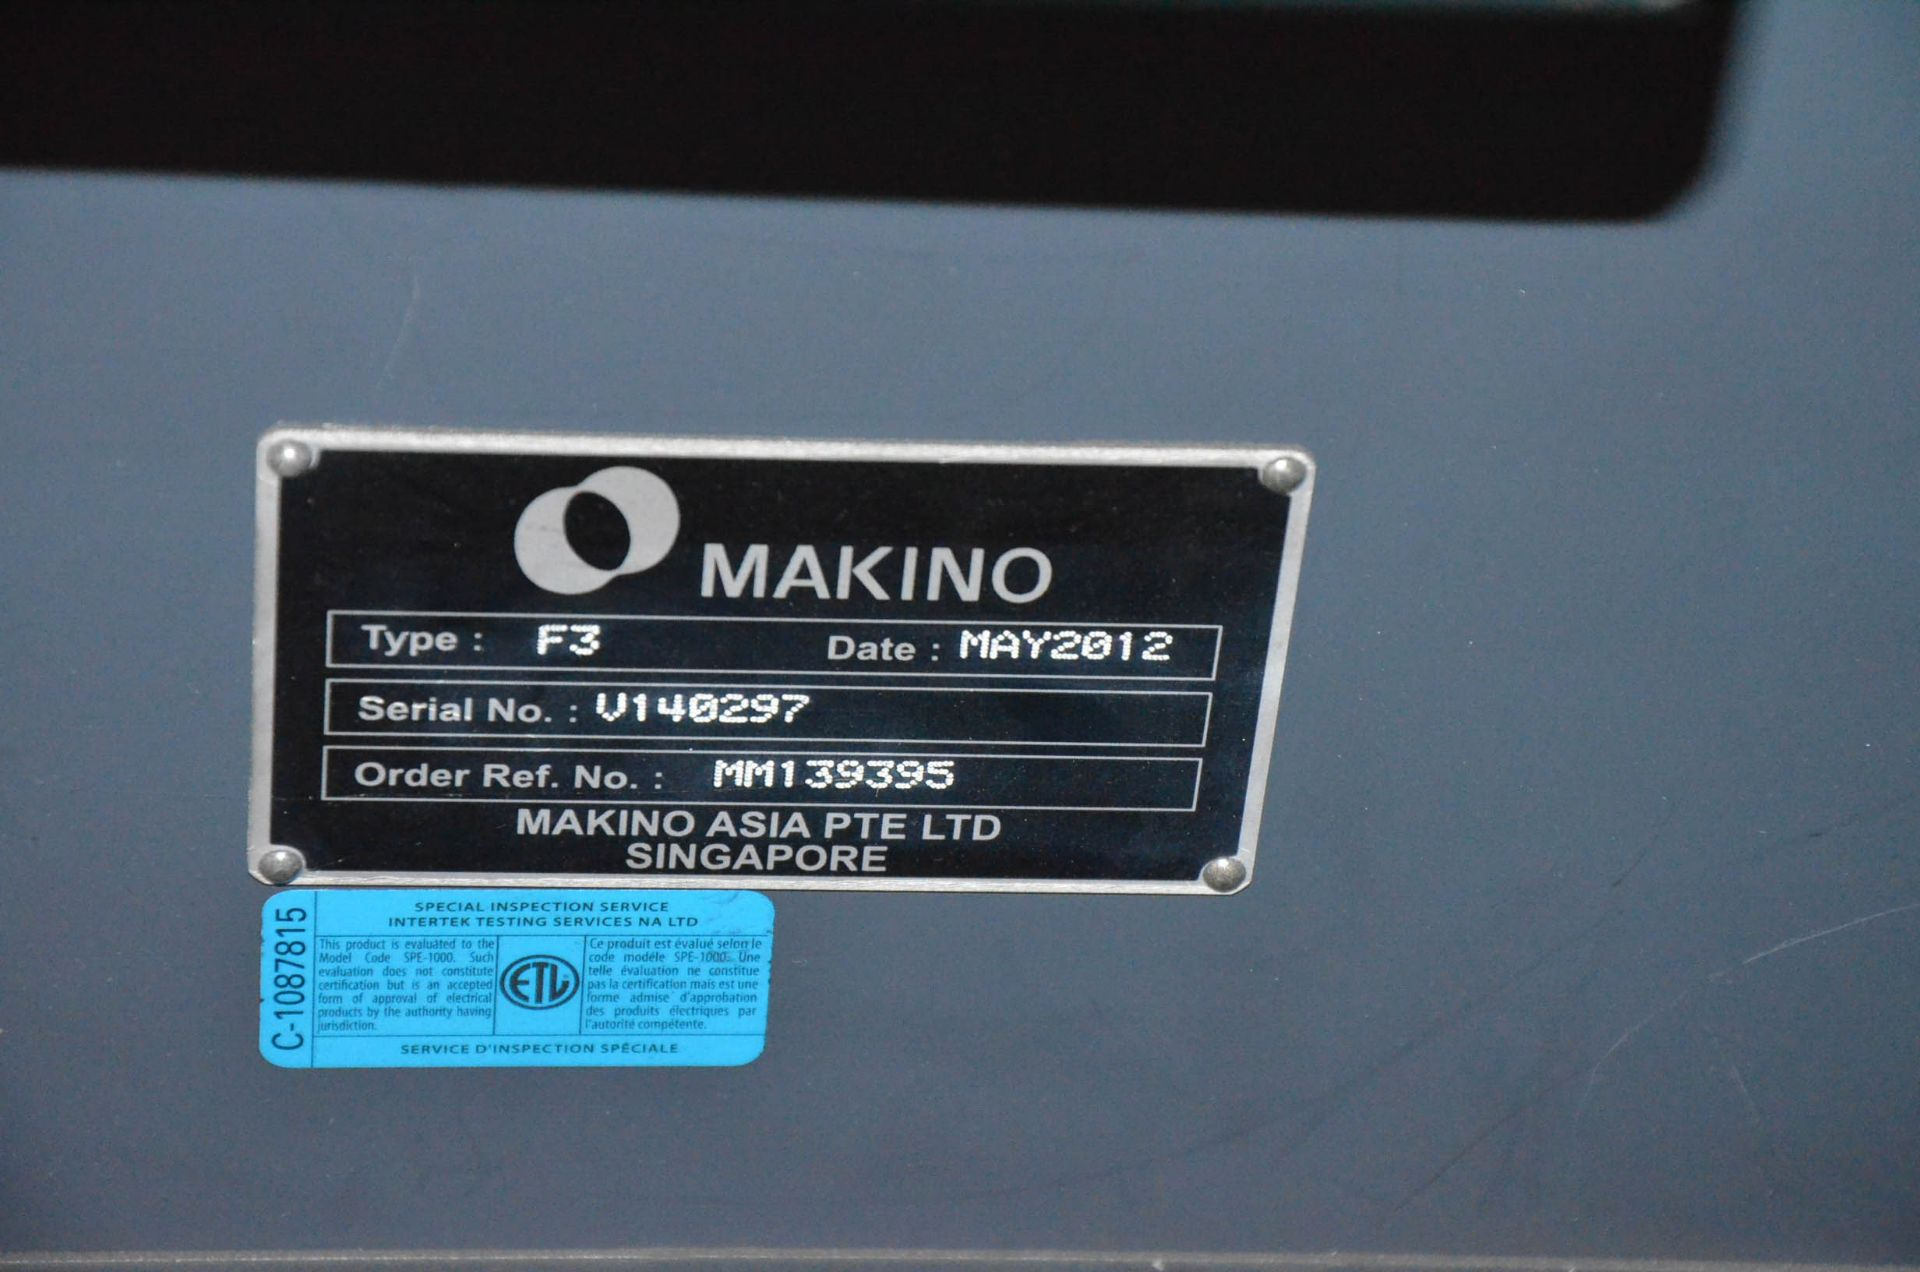 MAKINO (2012) F3 CNC VERTICAL MACHINING CENTER WITH MAKINO PROFESSIONAL 5 TOUCHSCREEN CNC CONTROL, - Image 7 of 9